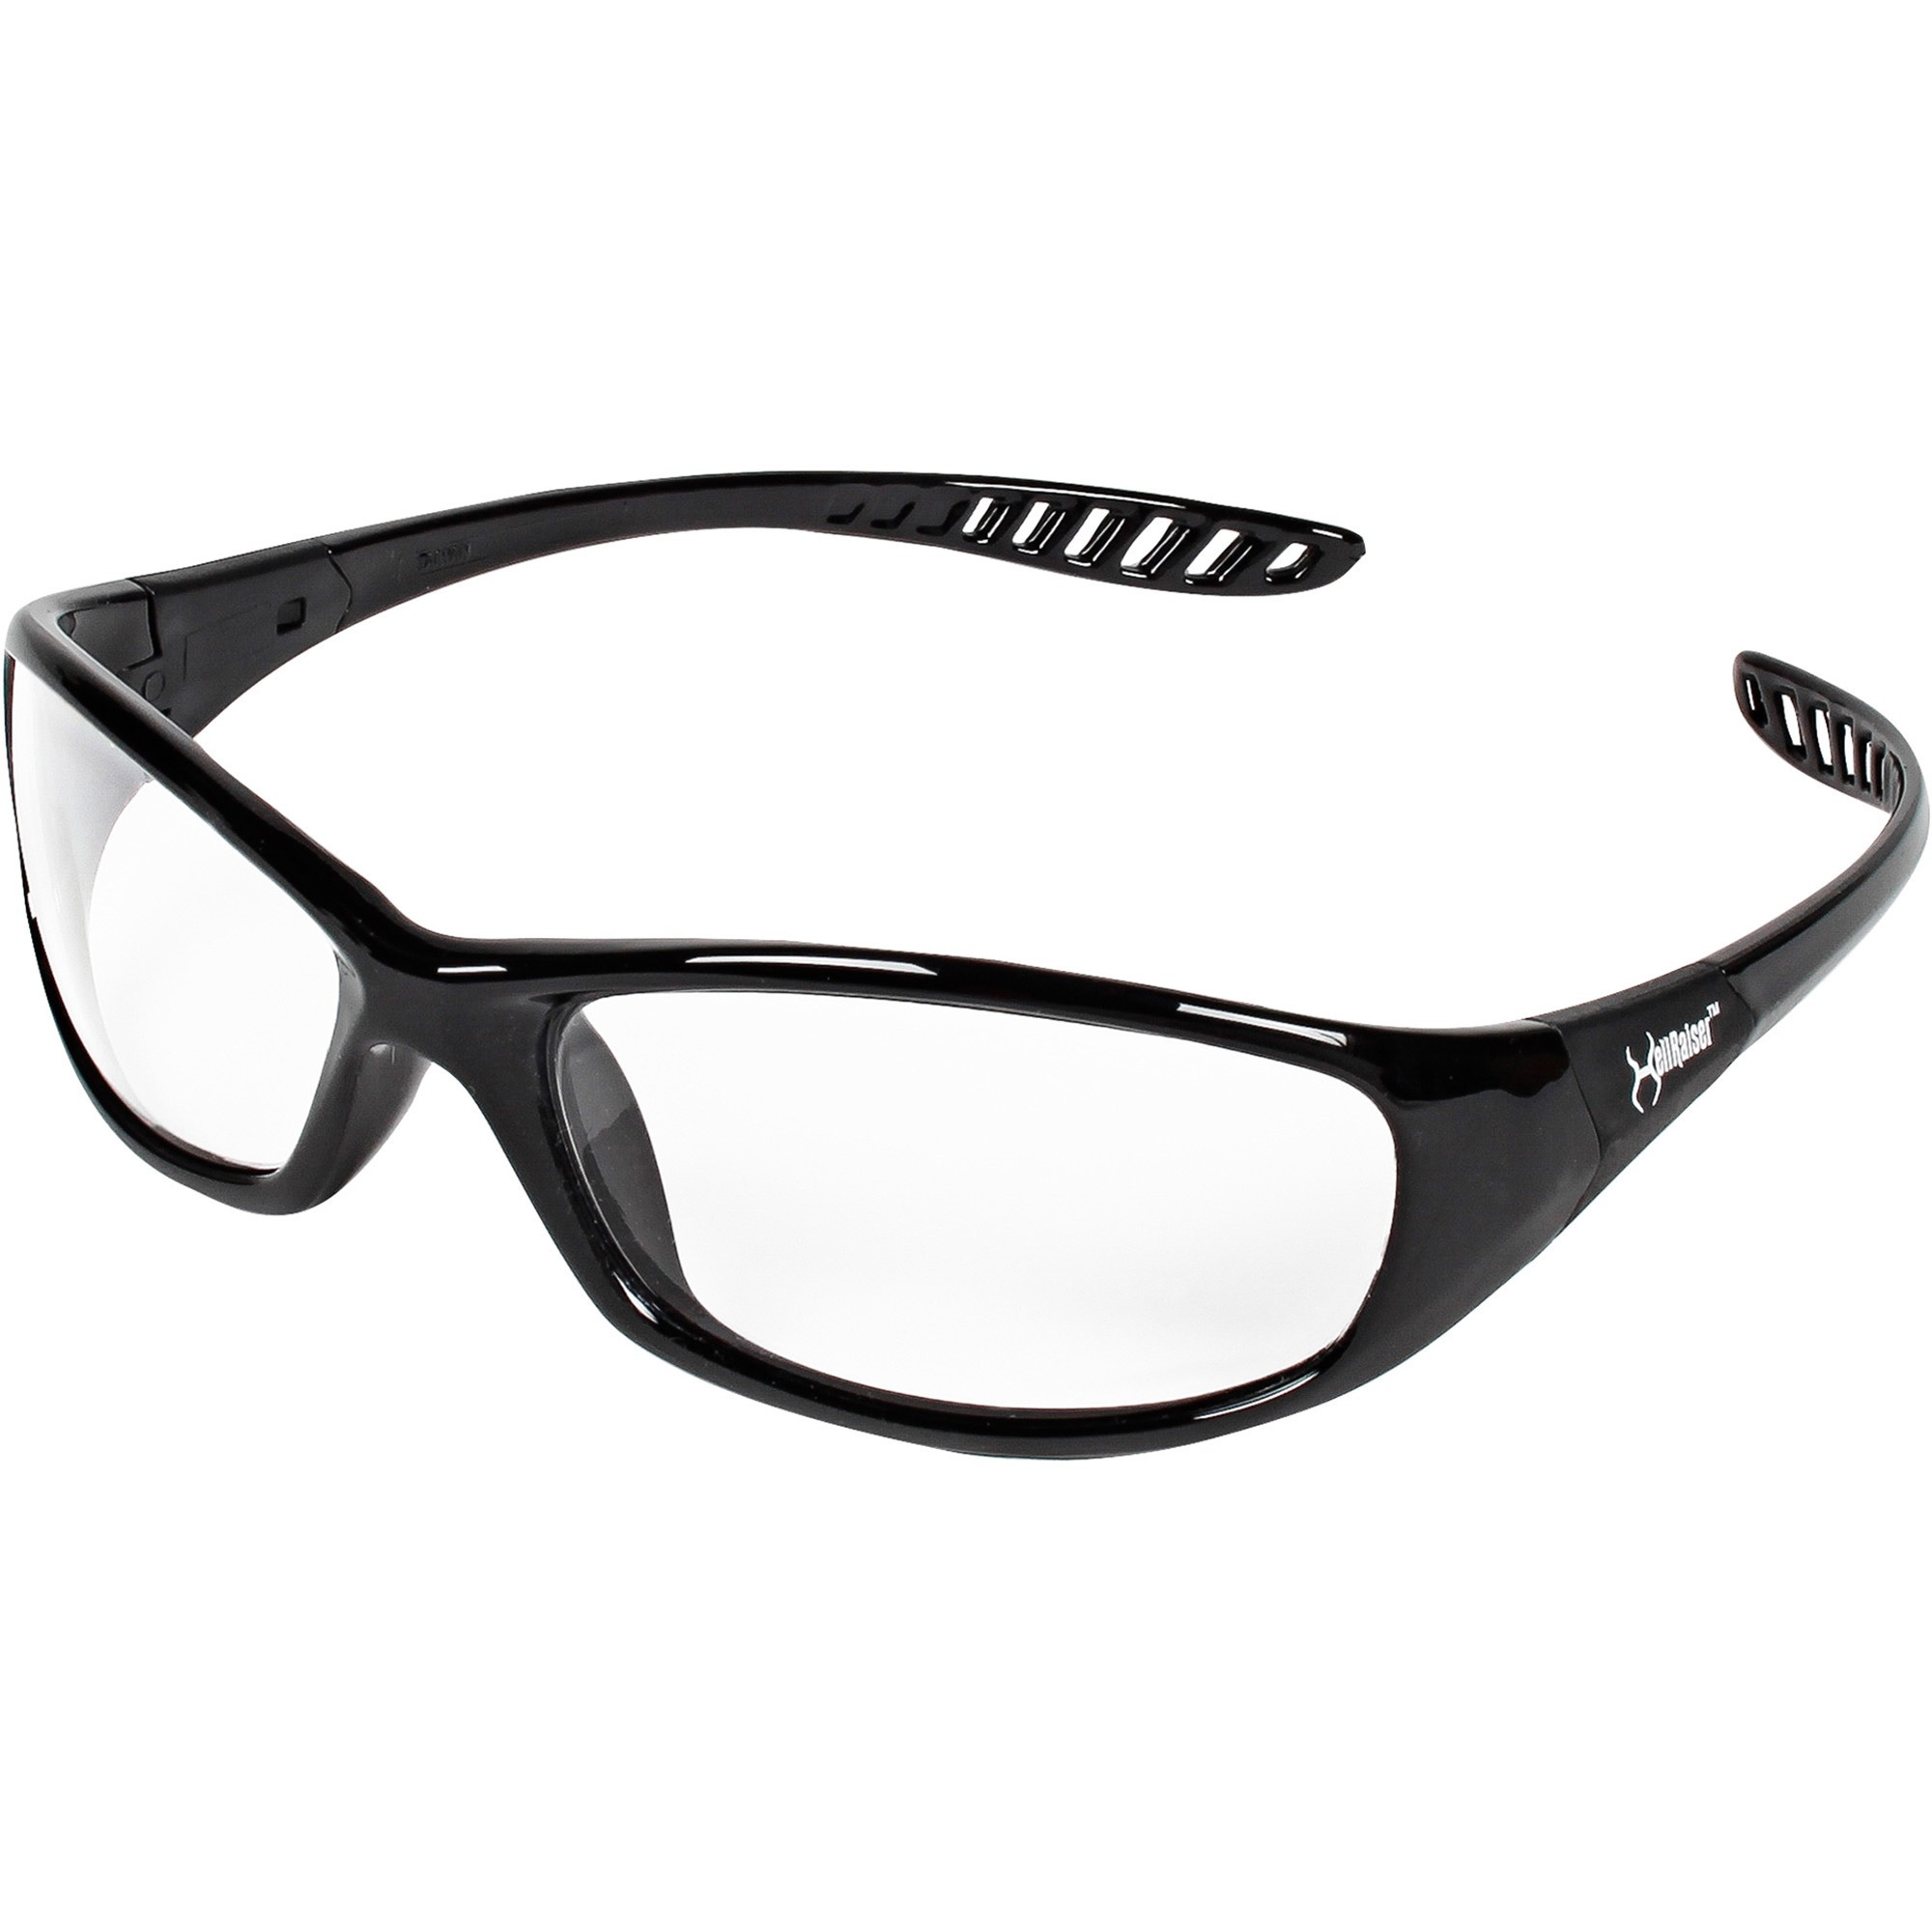 Kimberly-clark Corporation Jackson Safety V40 Hellraiser Safety Eyewear - Lightweight, Flexible, Comfortable - Ultraviolet Protection - Polycarbonate Lens - Clear, Black - 1 Each